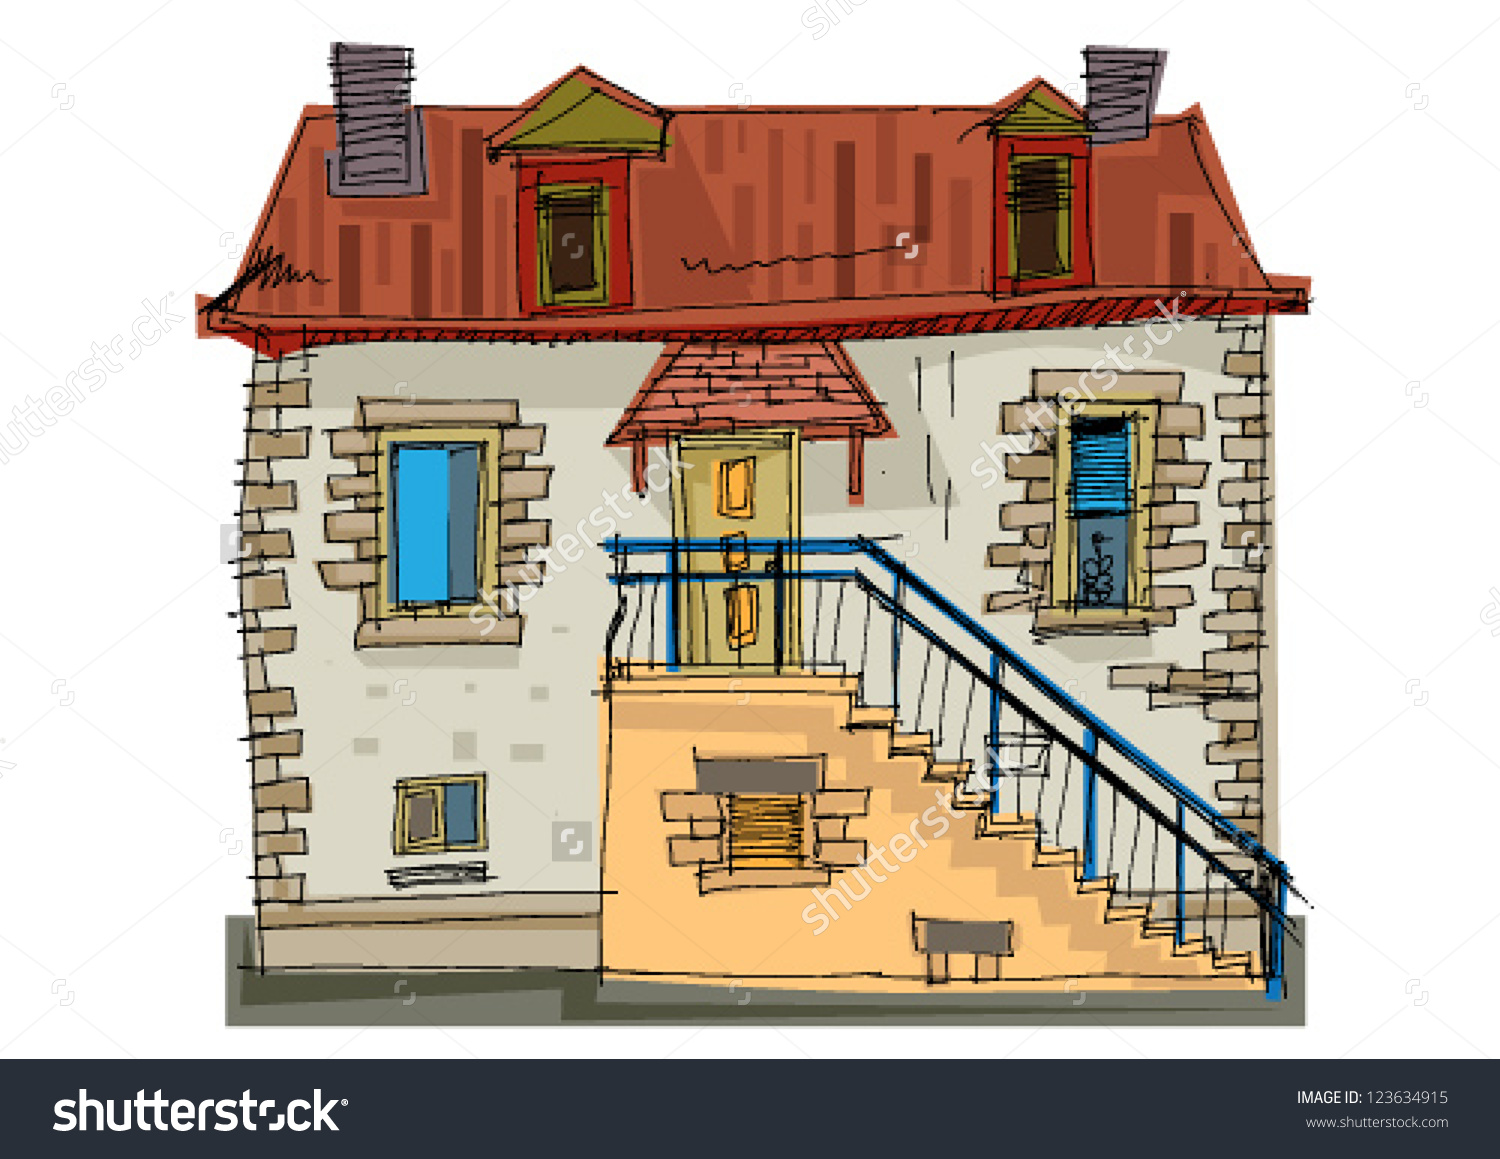 Typical House Brittany France Stock Vector 123634915.